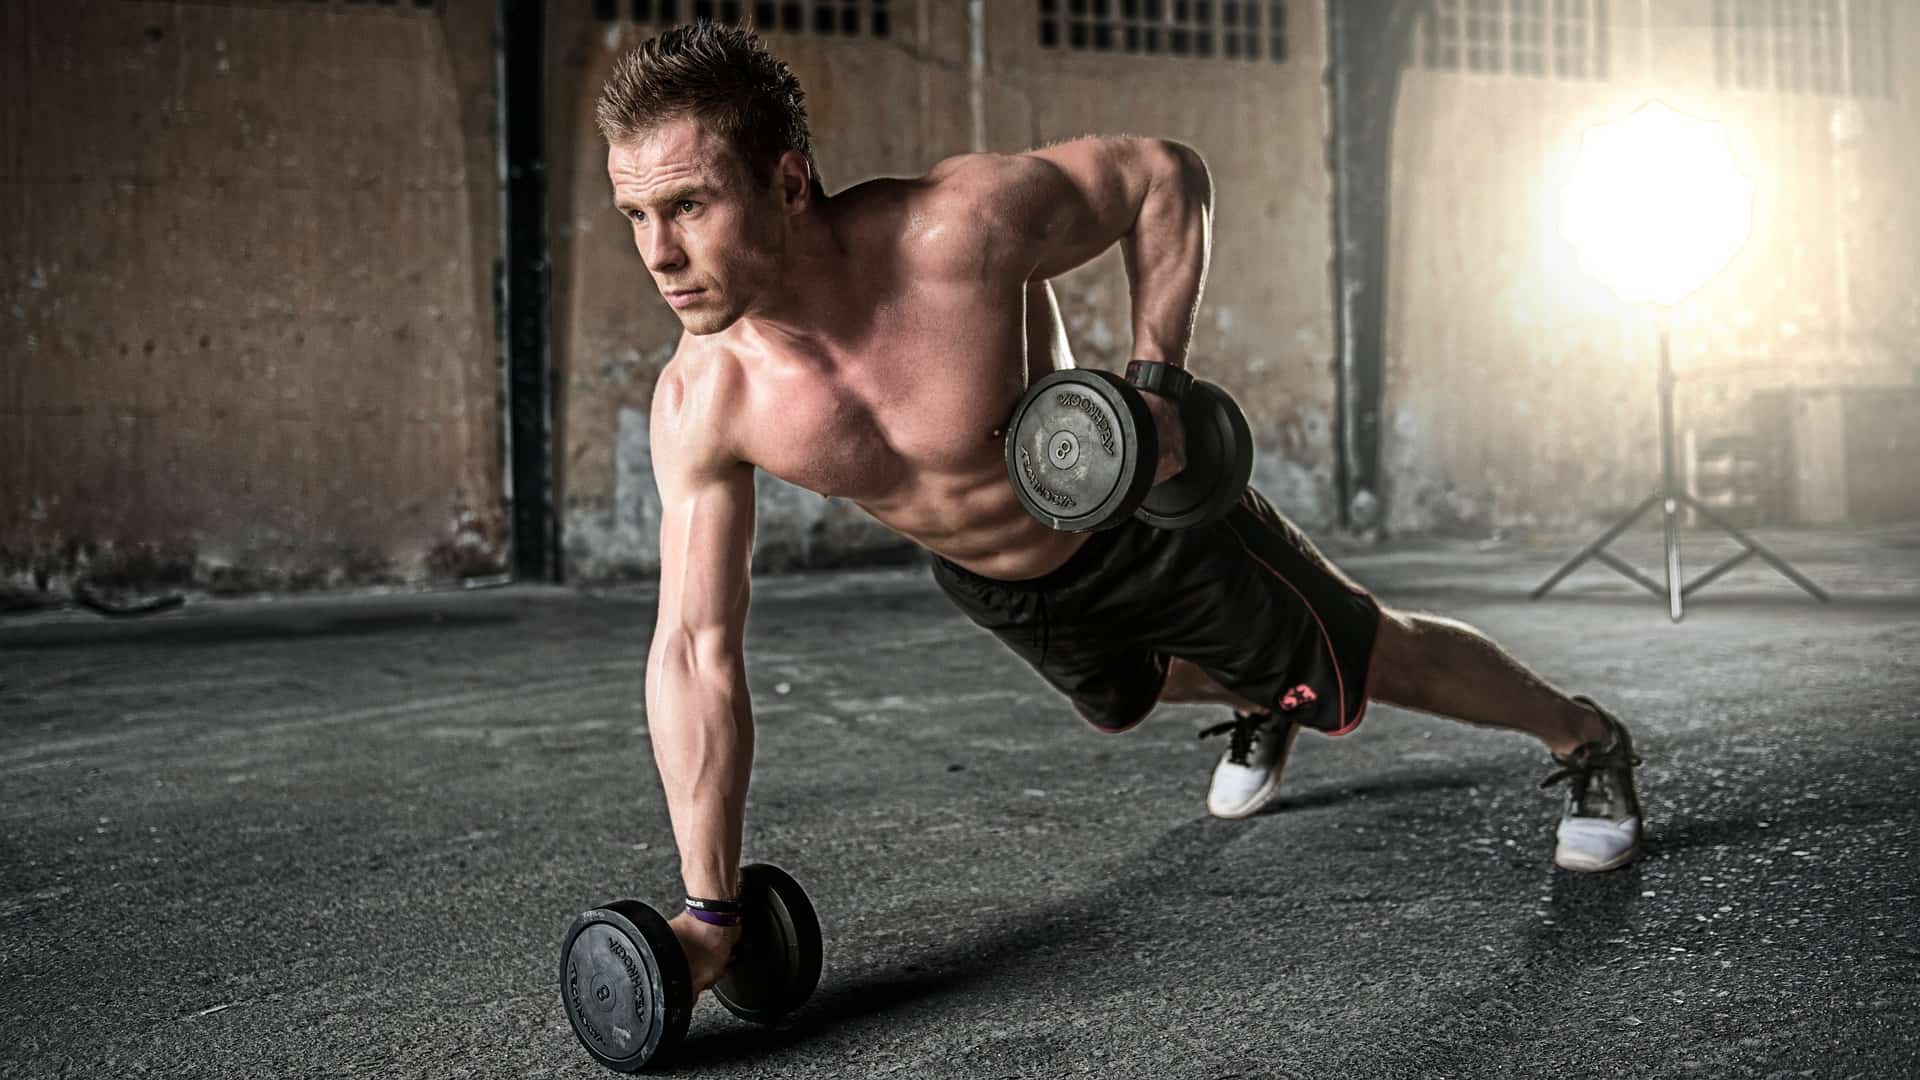 The 4 Most Fat Burning Exercises You Can Do At The Gym